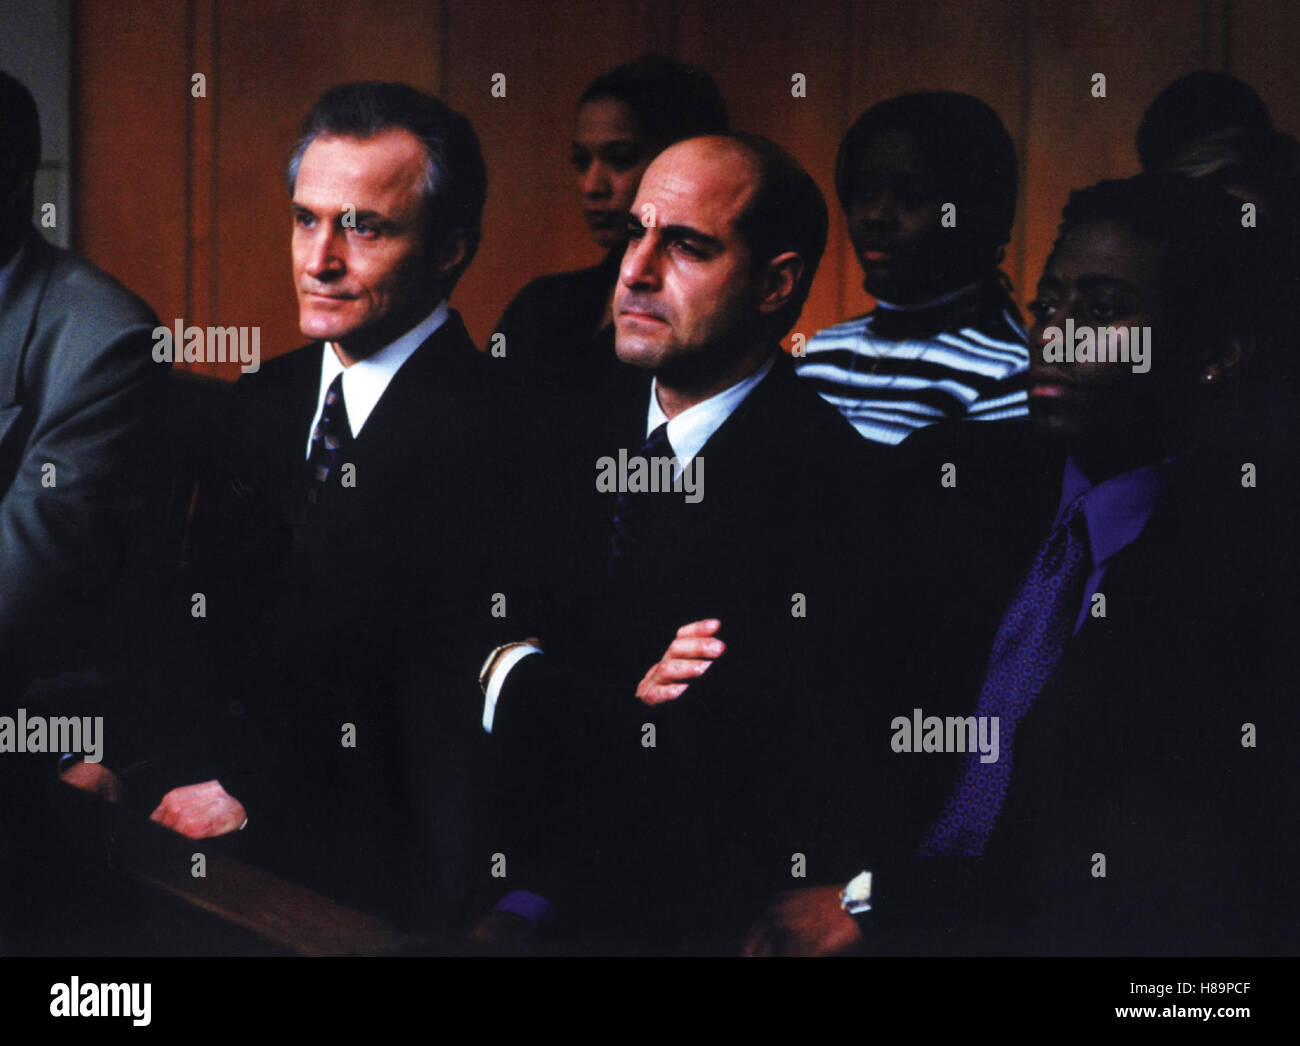 Under Cover - In Too Deep, (IN TOO DEEP) USA 1999, Regie: Michael Rymer, RON CANADA, STANLEY TUCCI - Stock Image